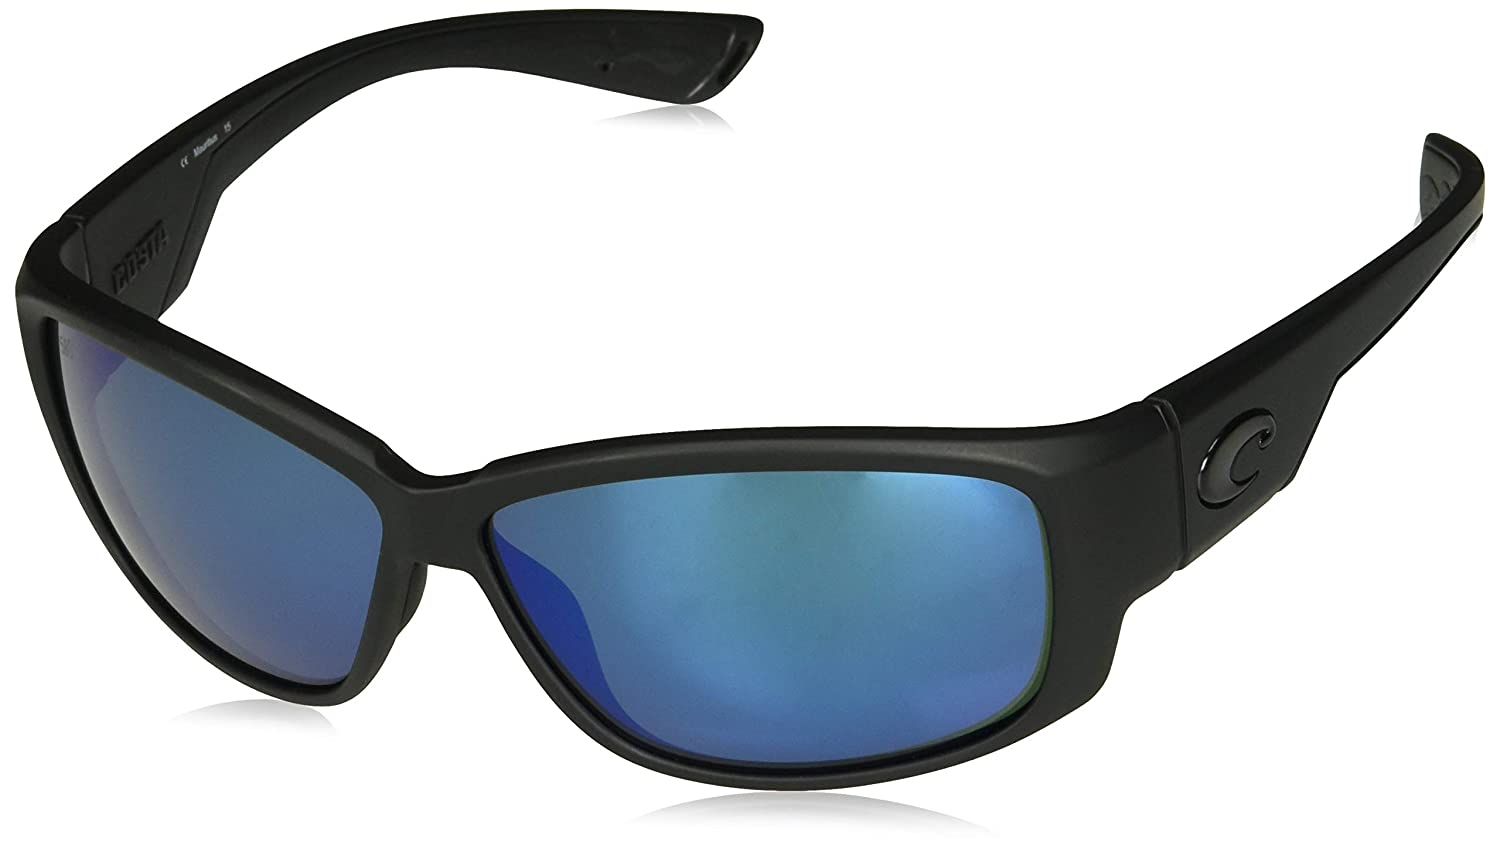 e14b846b8d1 Amazon.com  Costa Del Mar Luke Sunglasses